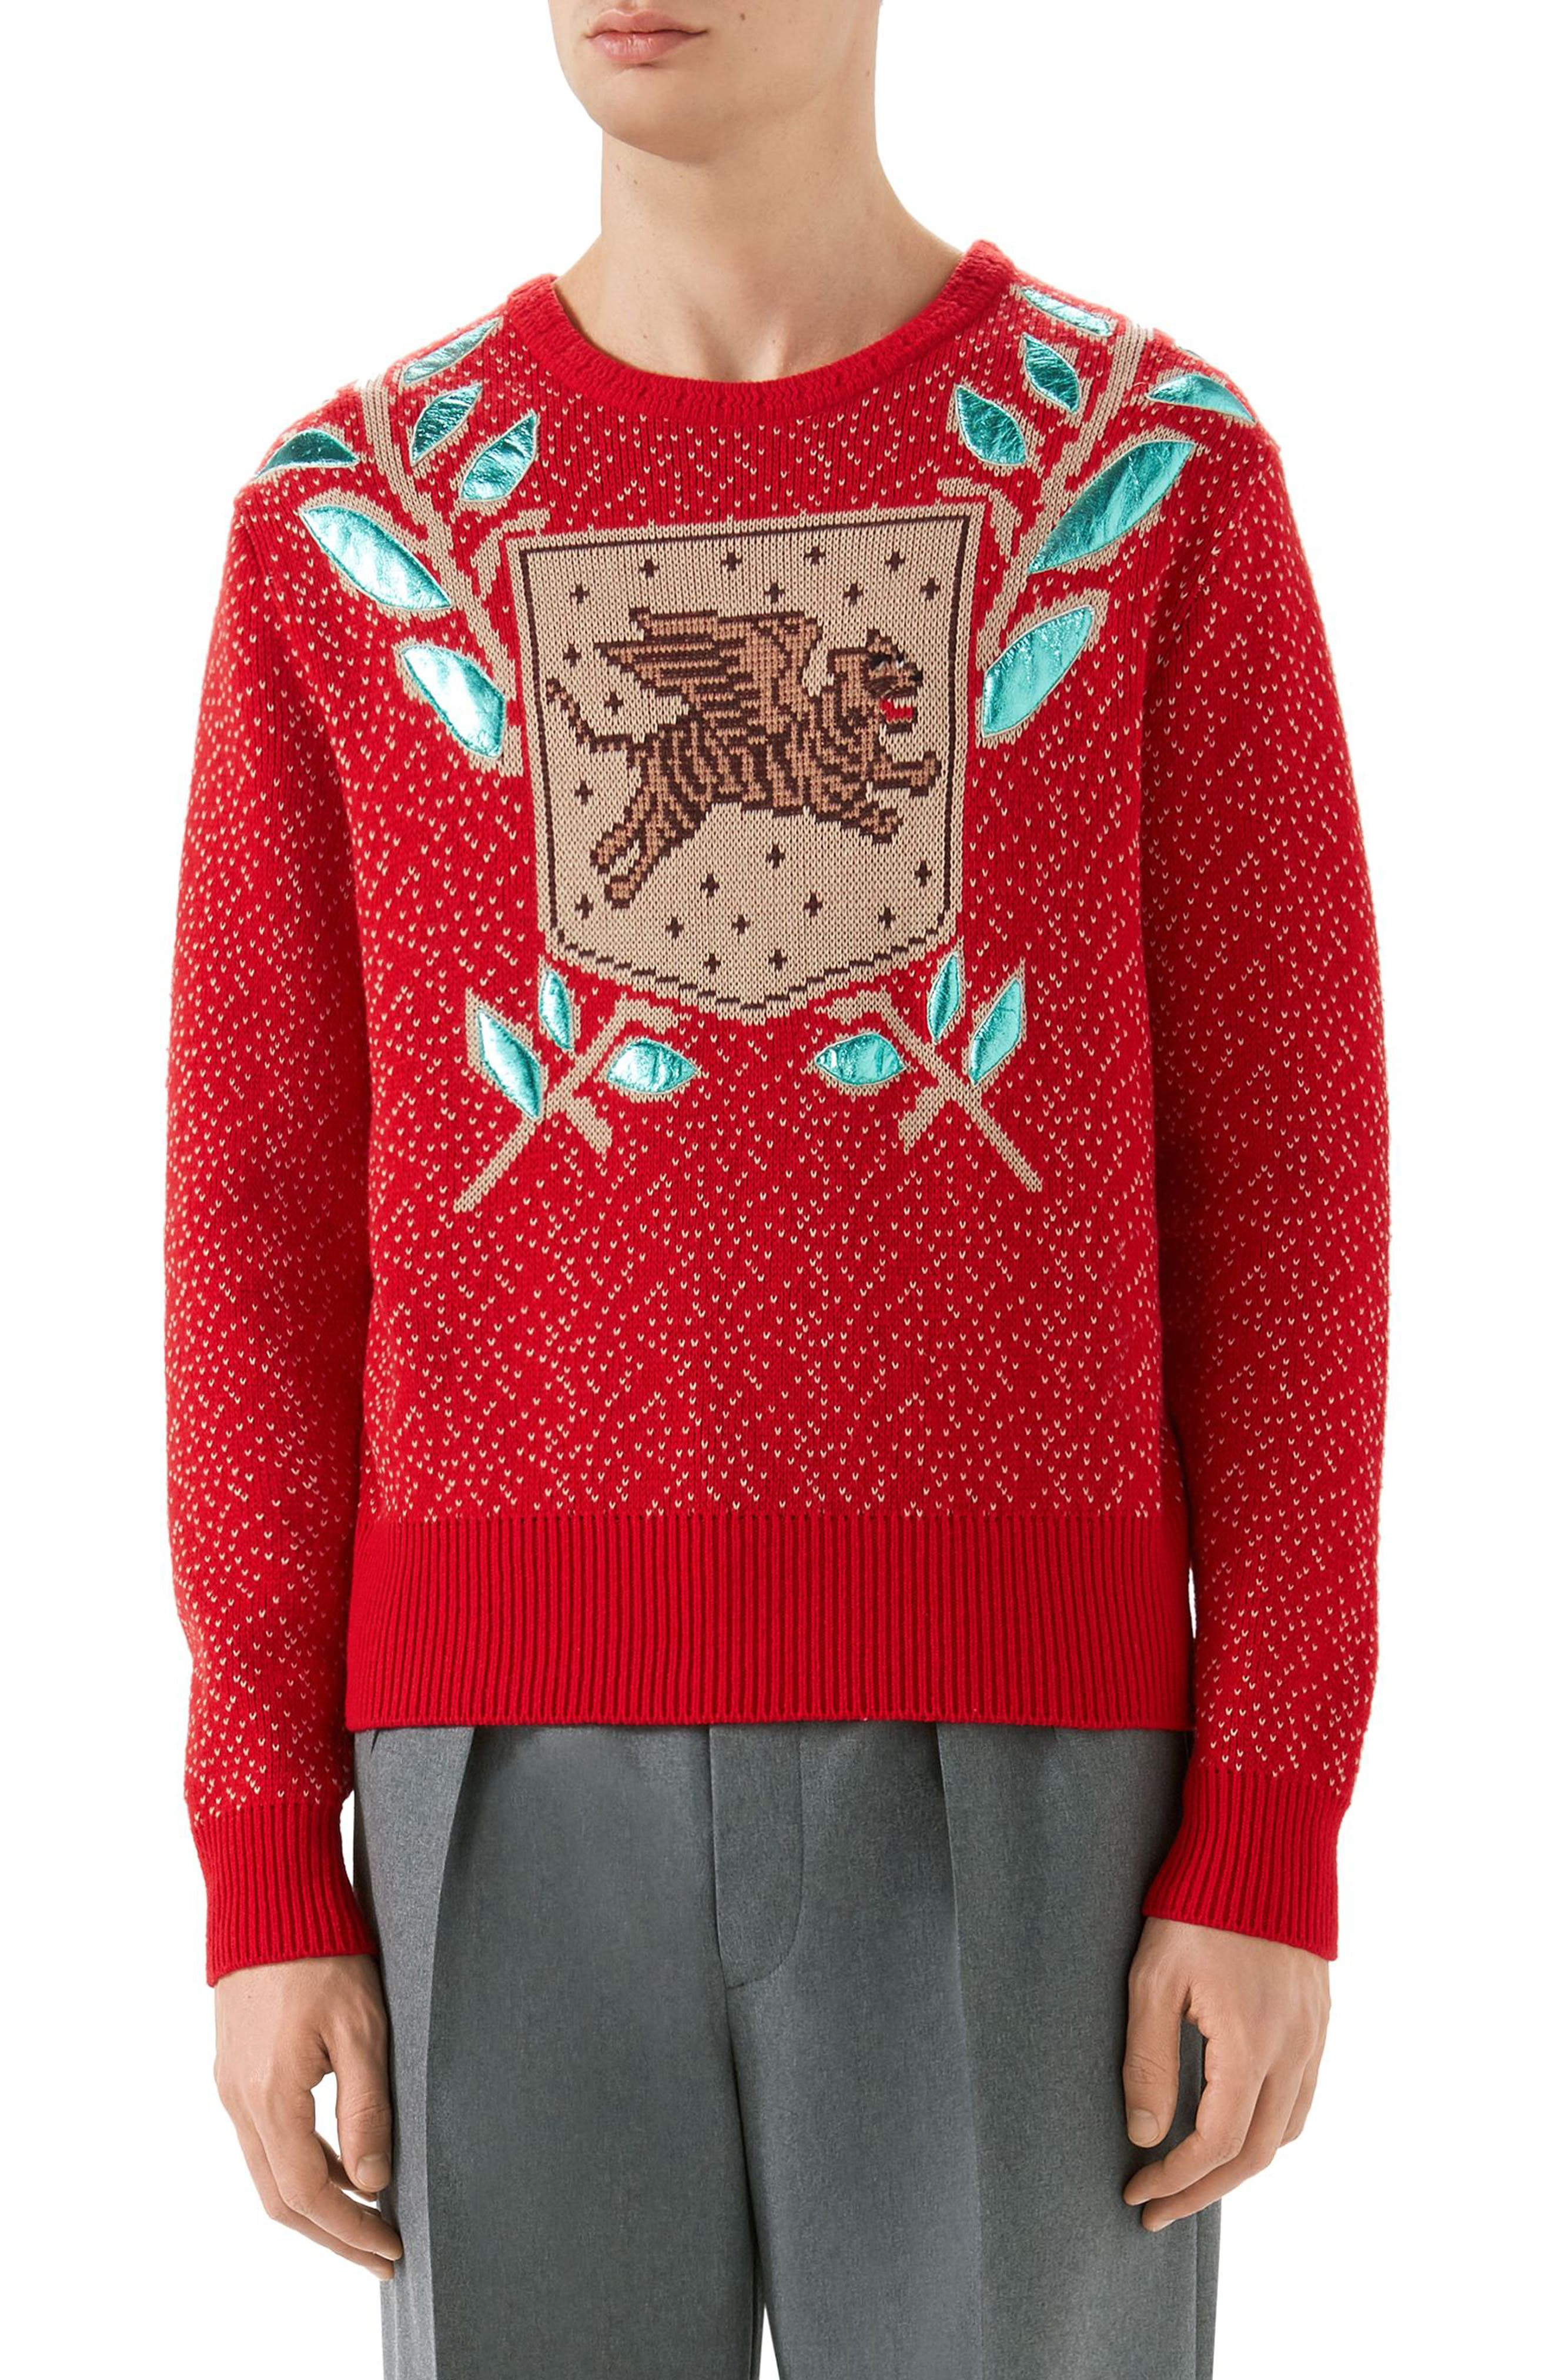 Jacquard Wool Blend Sweater,                         Main,                         color, LIVE RED